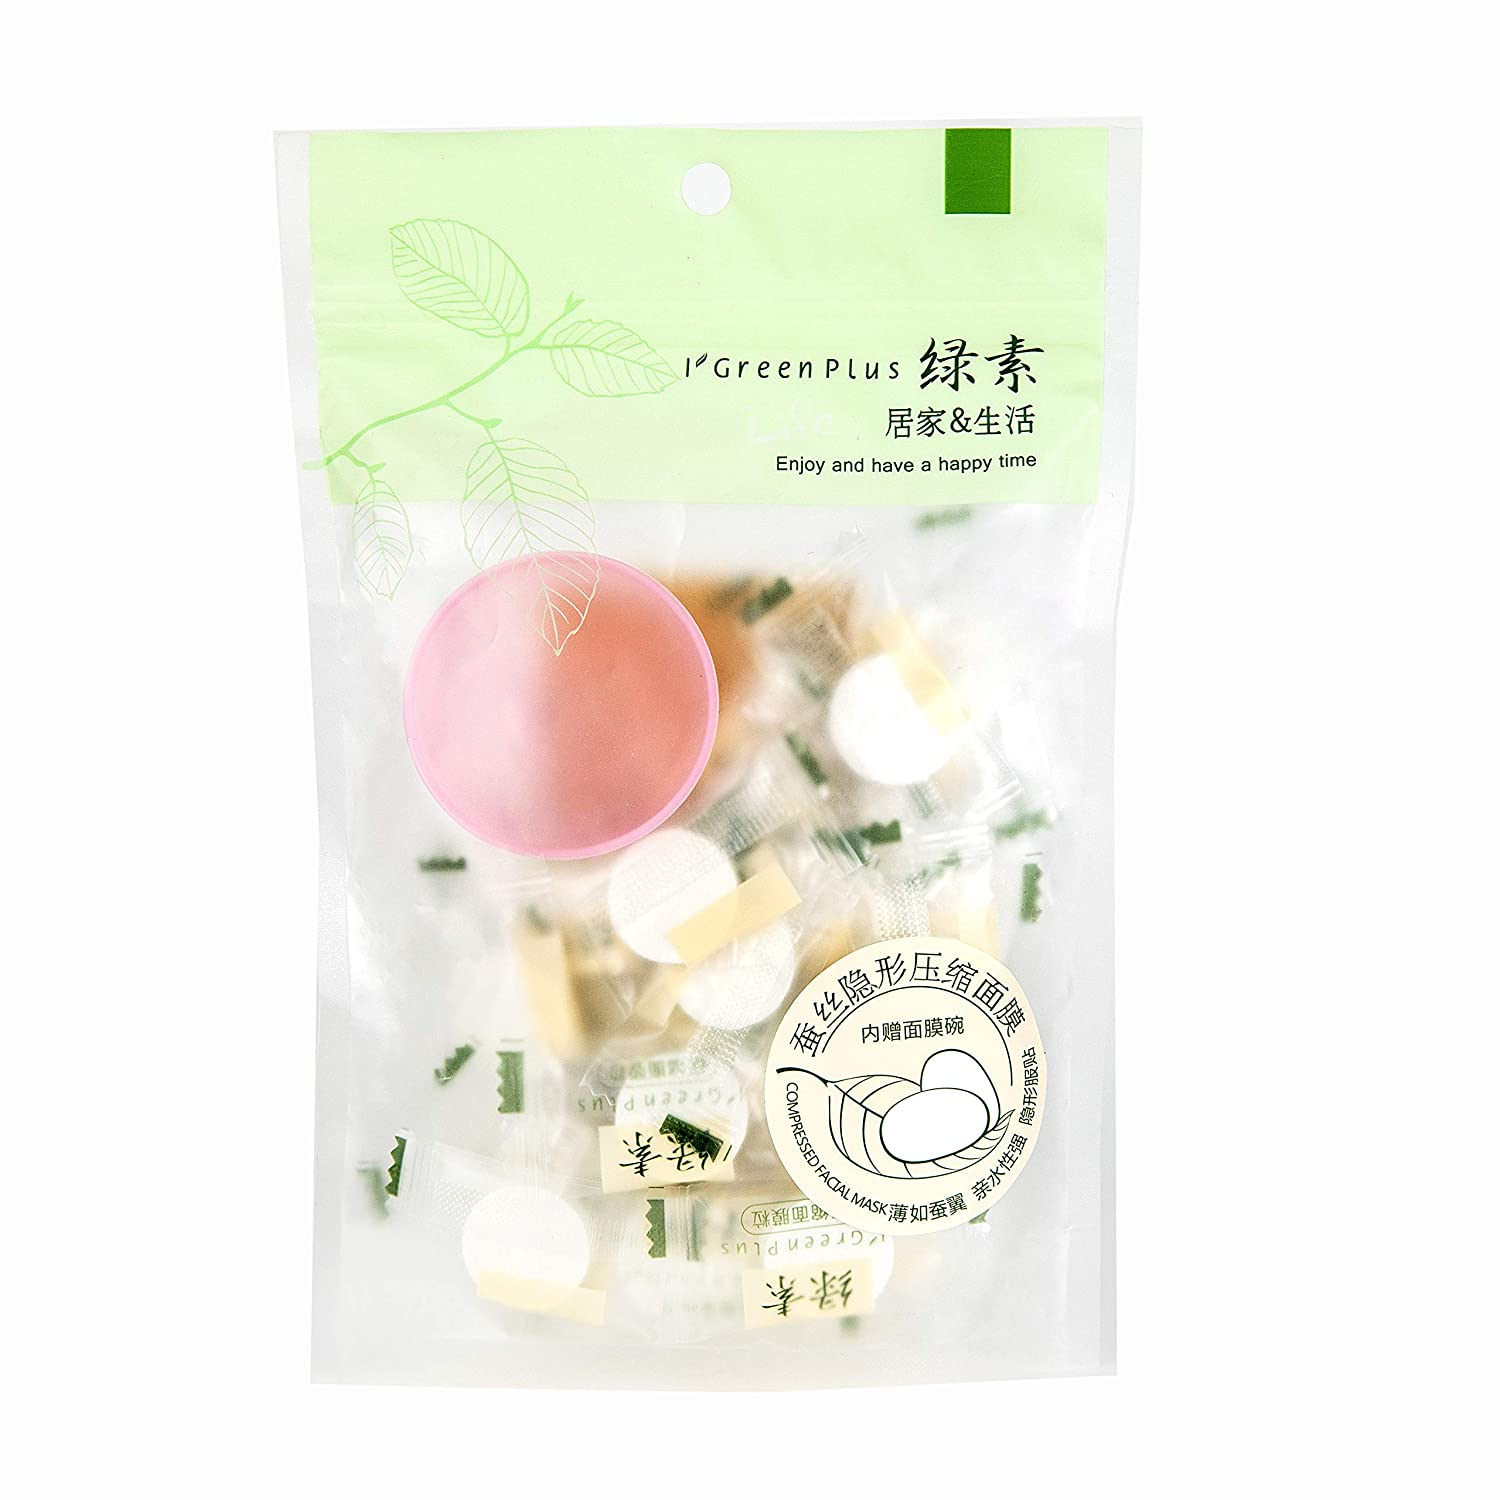 35 pcs Compressed Facial Mask Disposable Mask Paper Natural Silk Skin Care Masks Home DIY Sheet Mask Skin Care Products Contains a Mask Bowl Available in Four Material